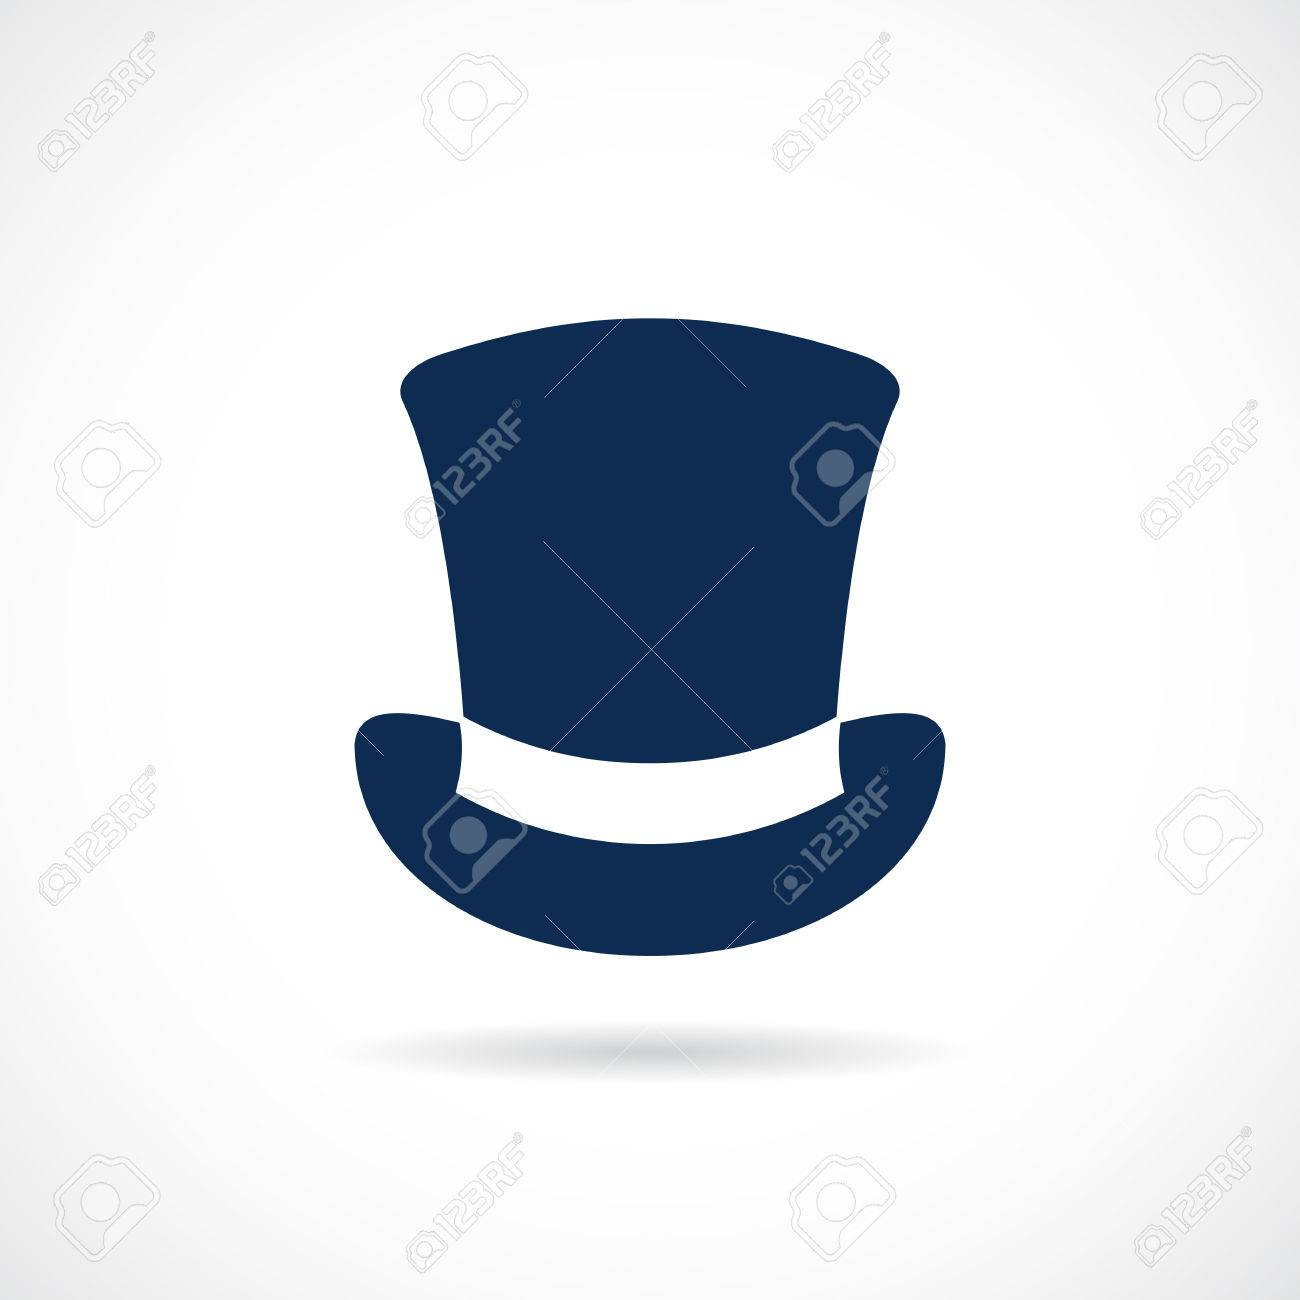 Old top hat vector icon Stock Vector - 84440545 fdbfeb727ad